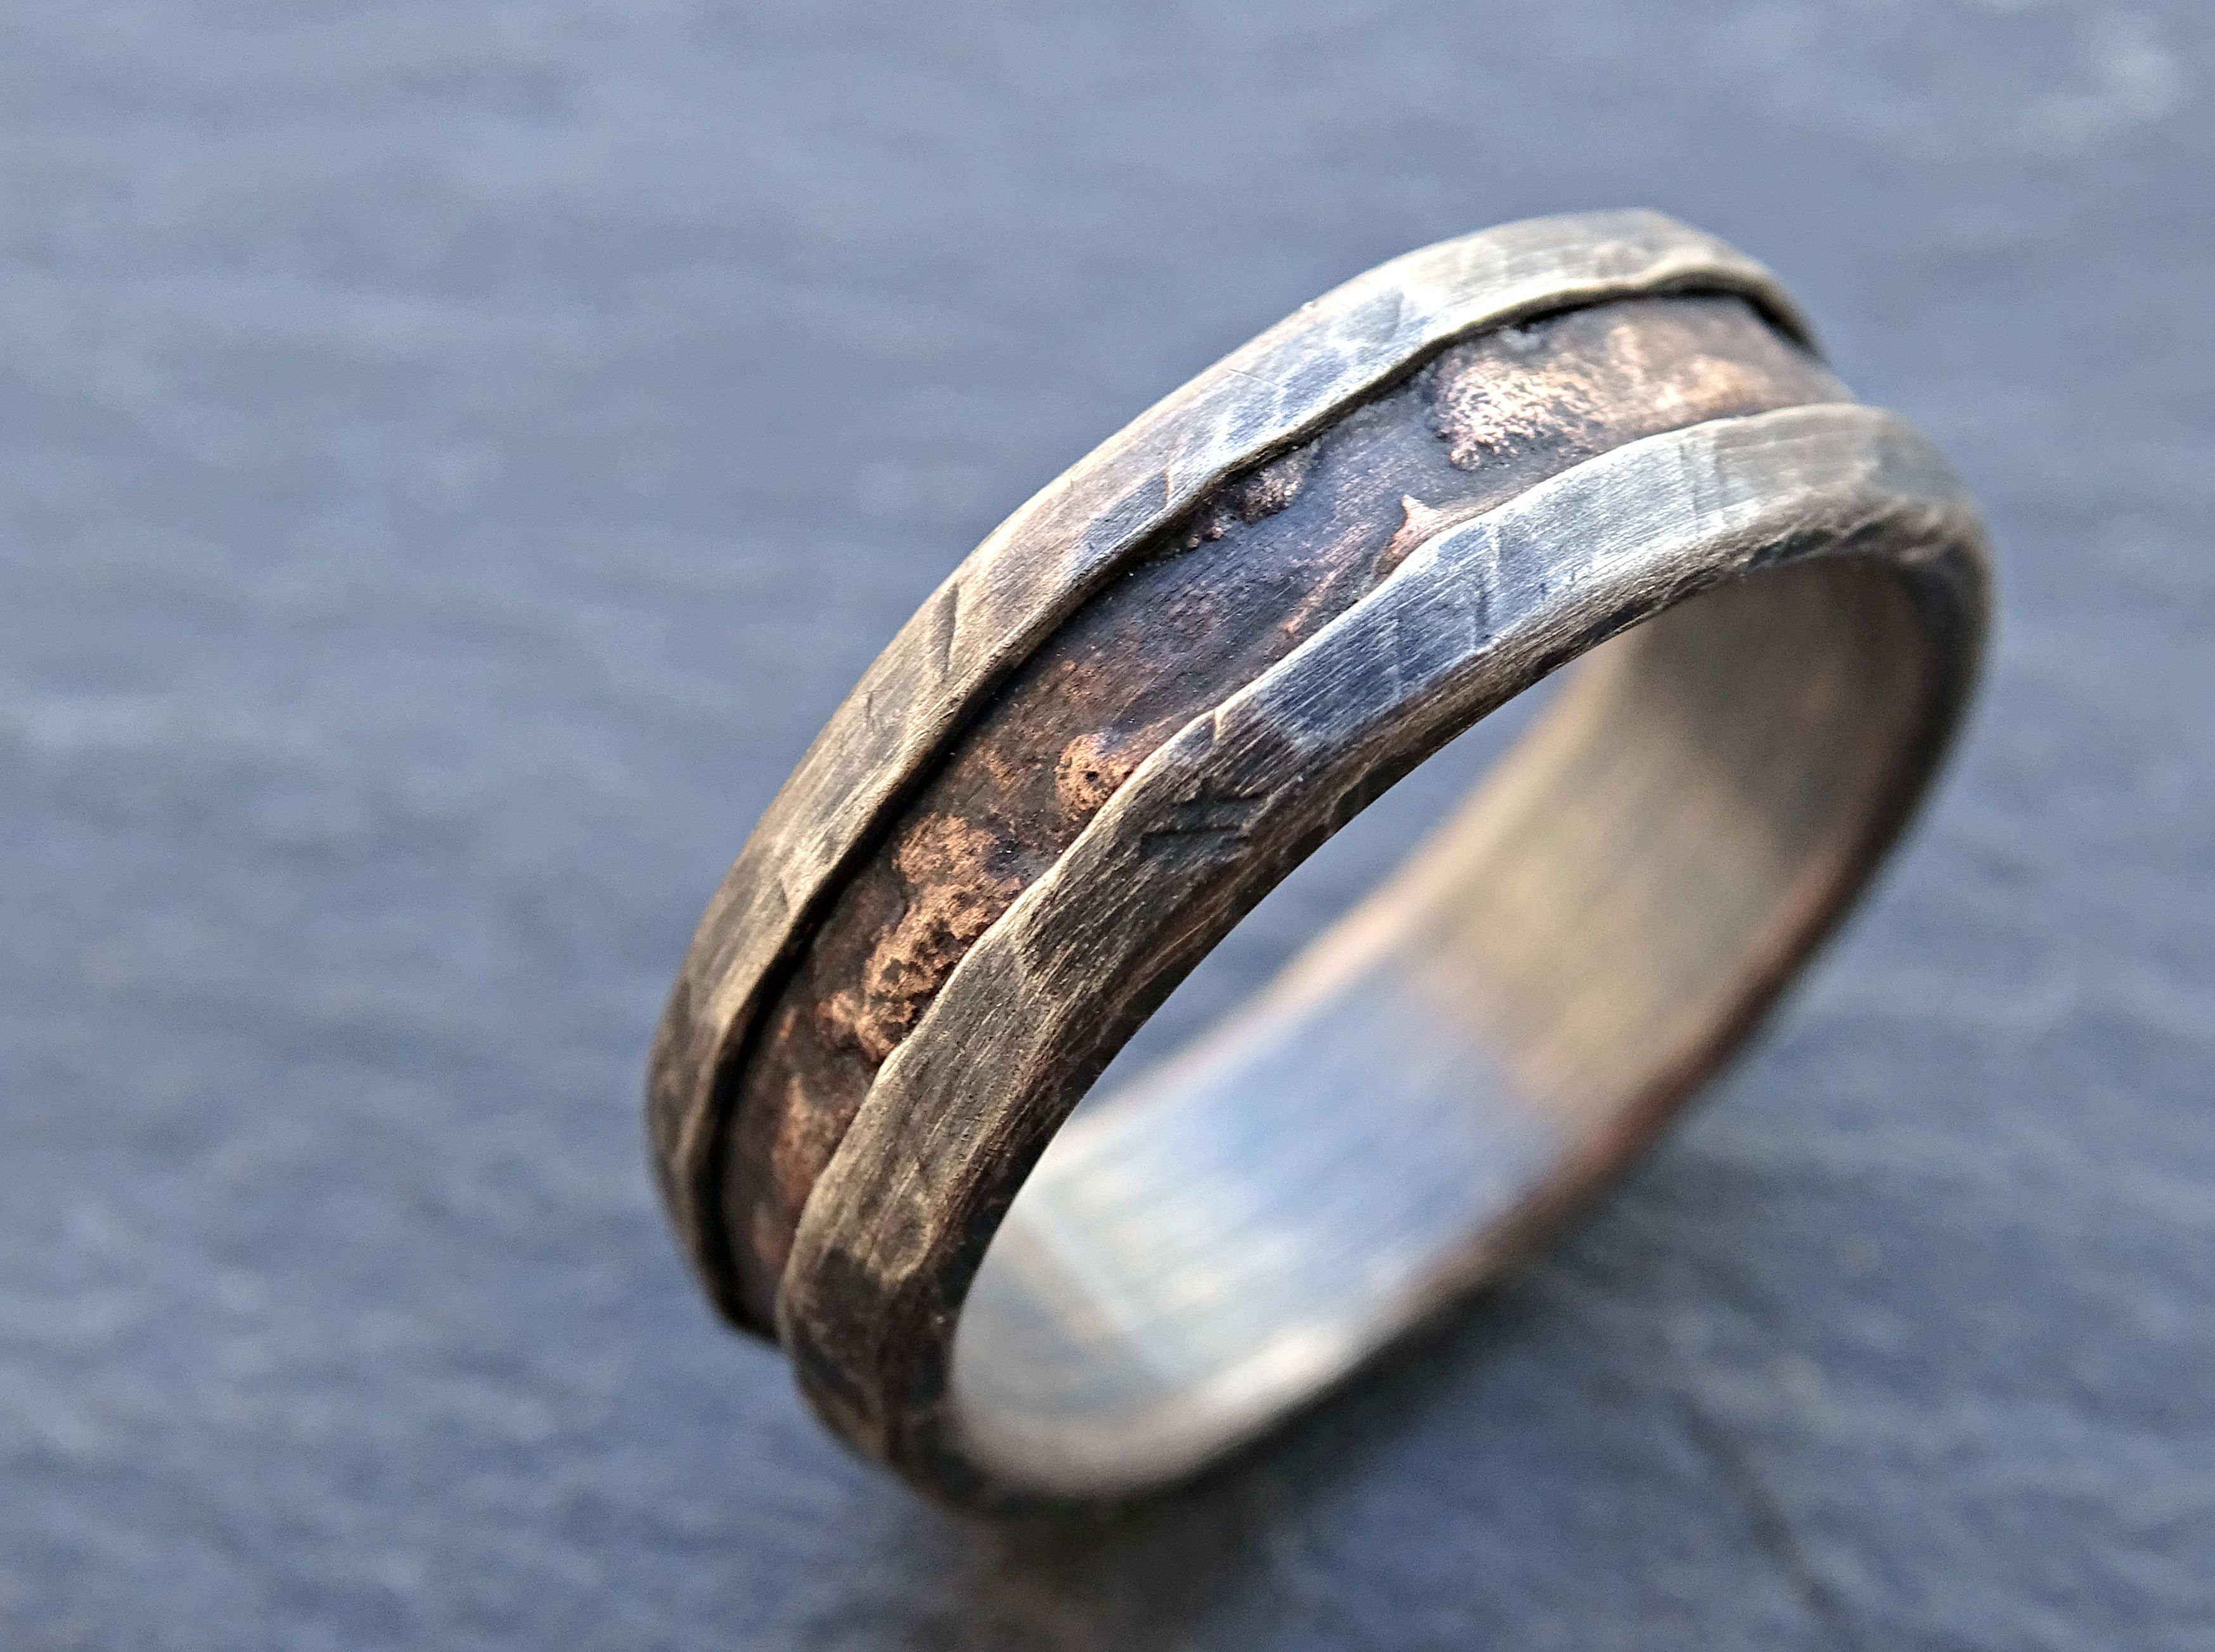 buy a hand made cool mens ring, alternative wedding band rugged